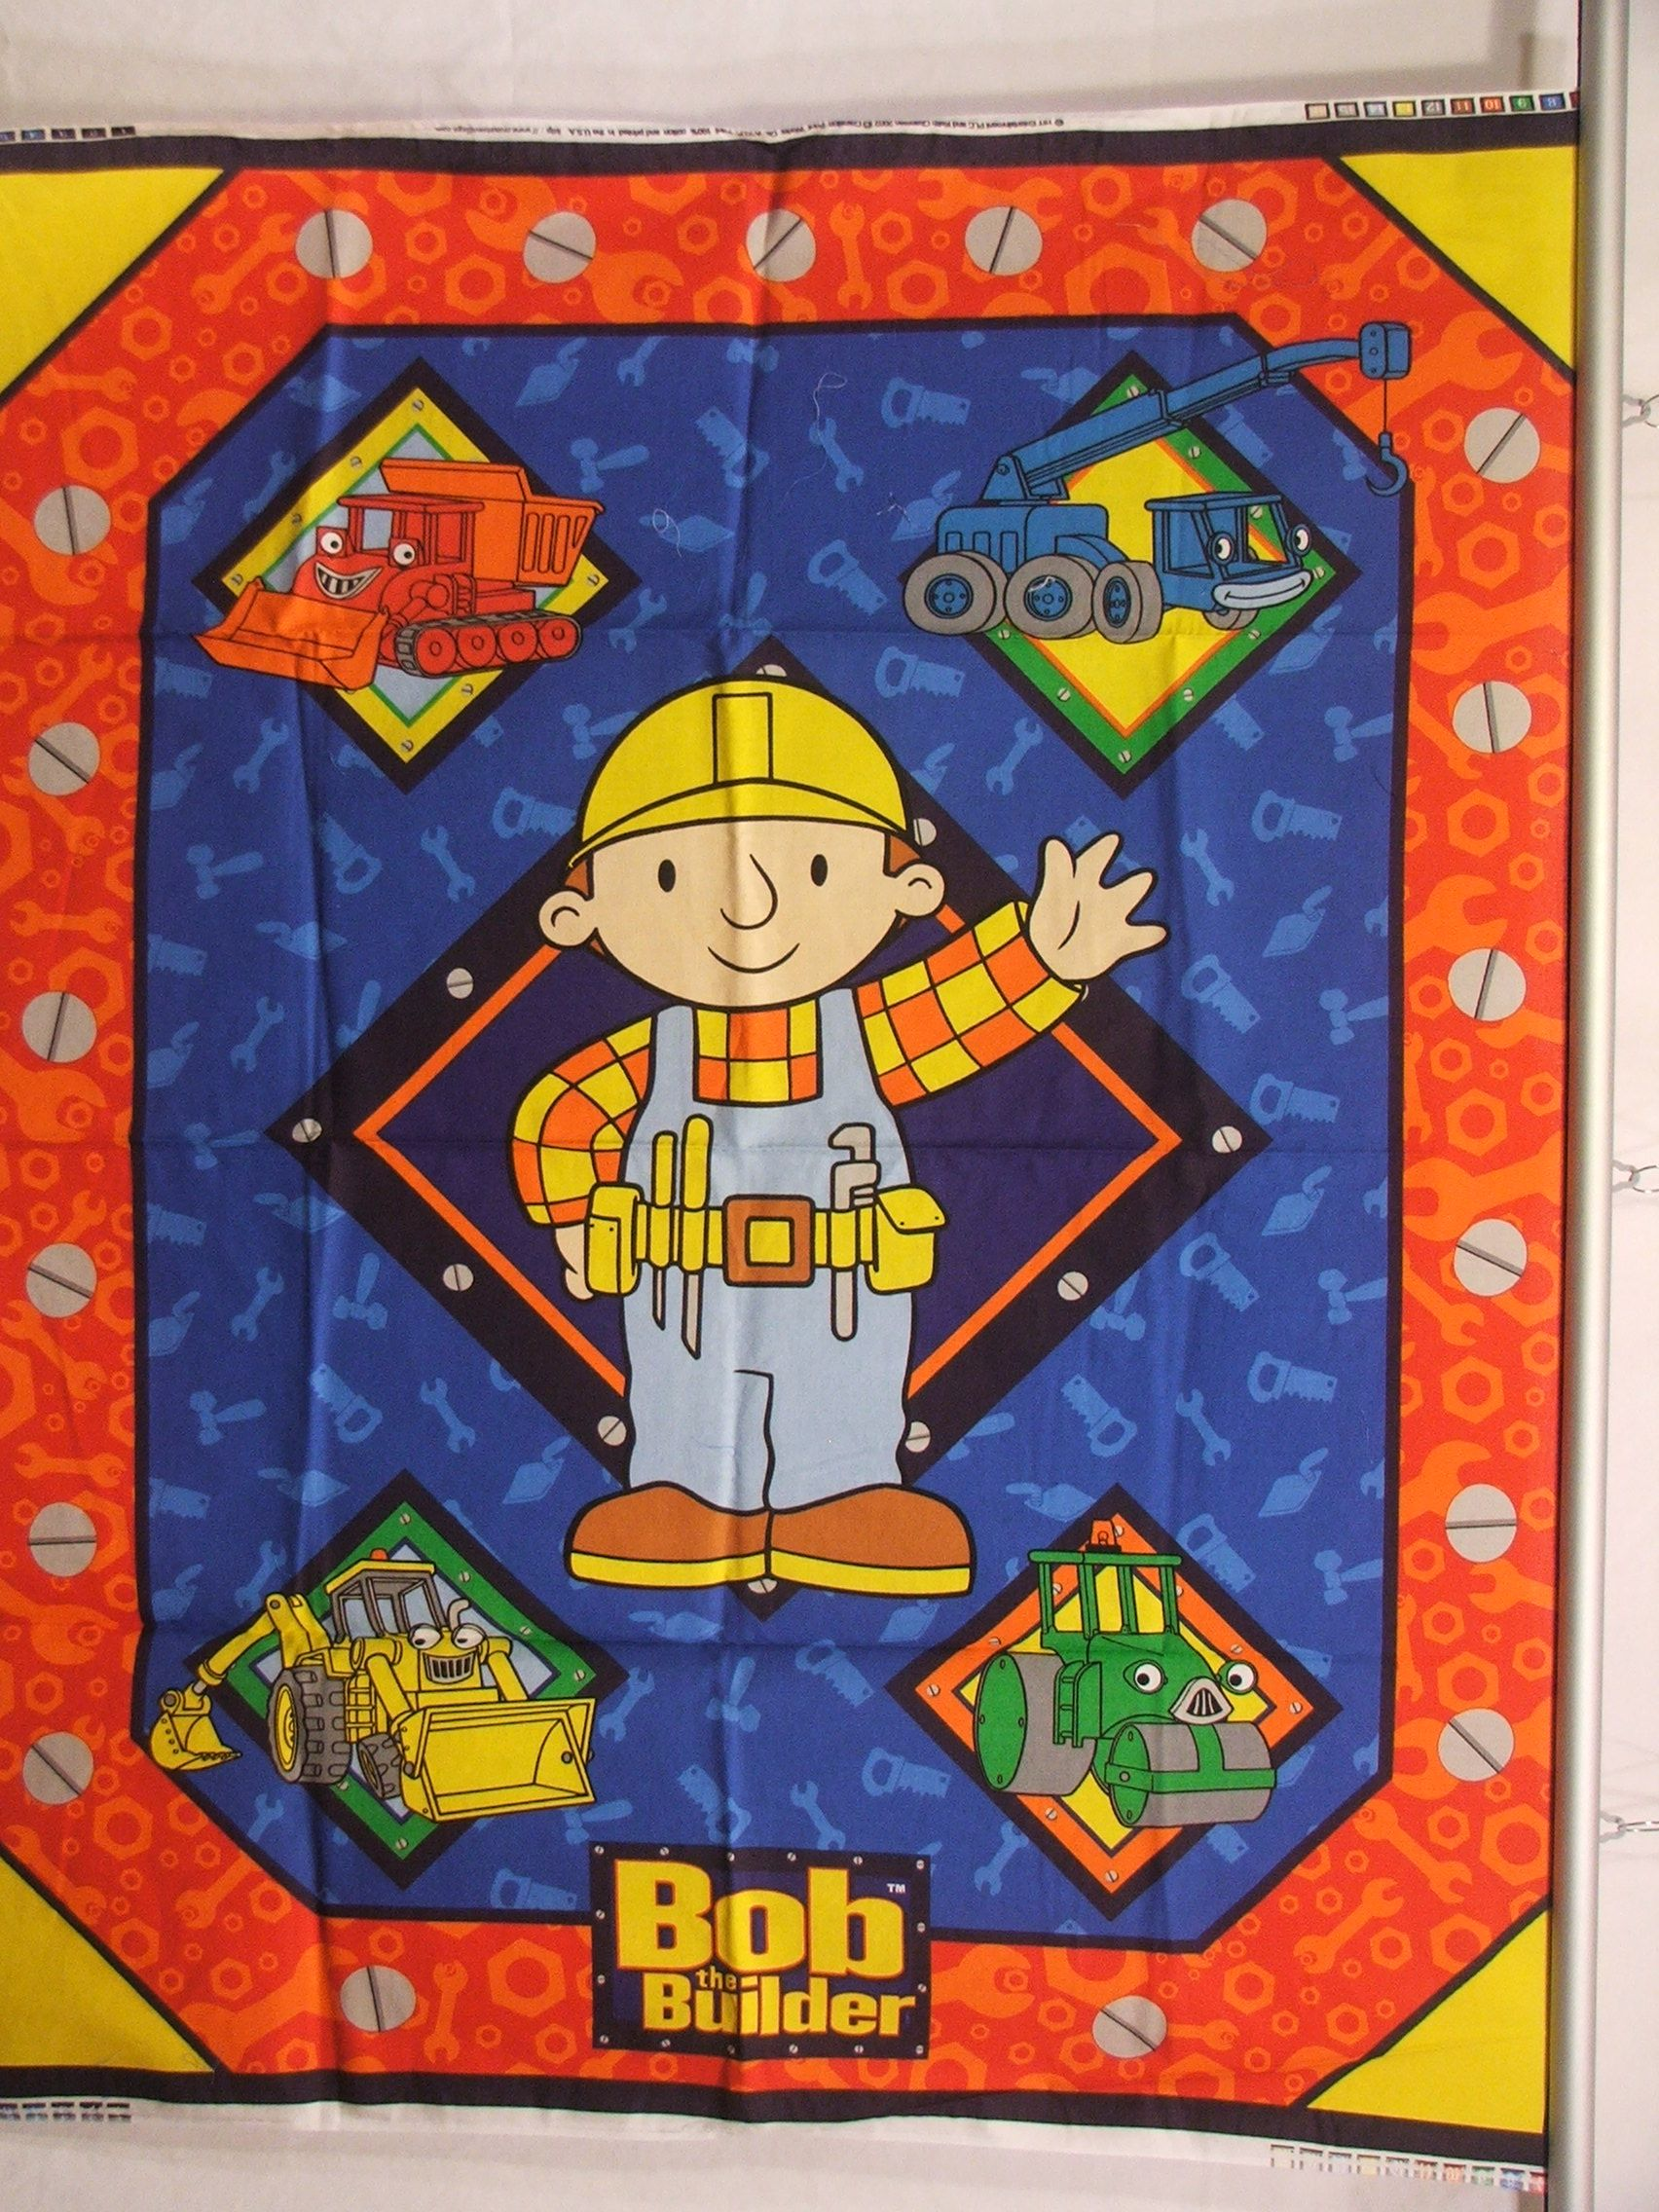 Check out bob the builder fabric panels and so much more